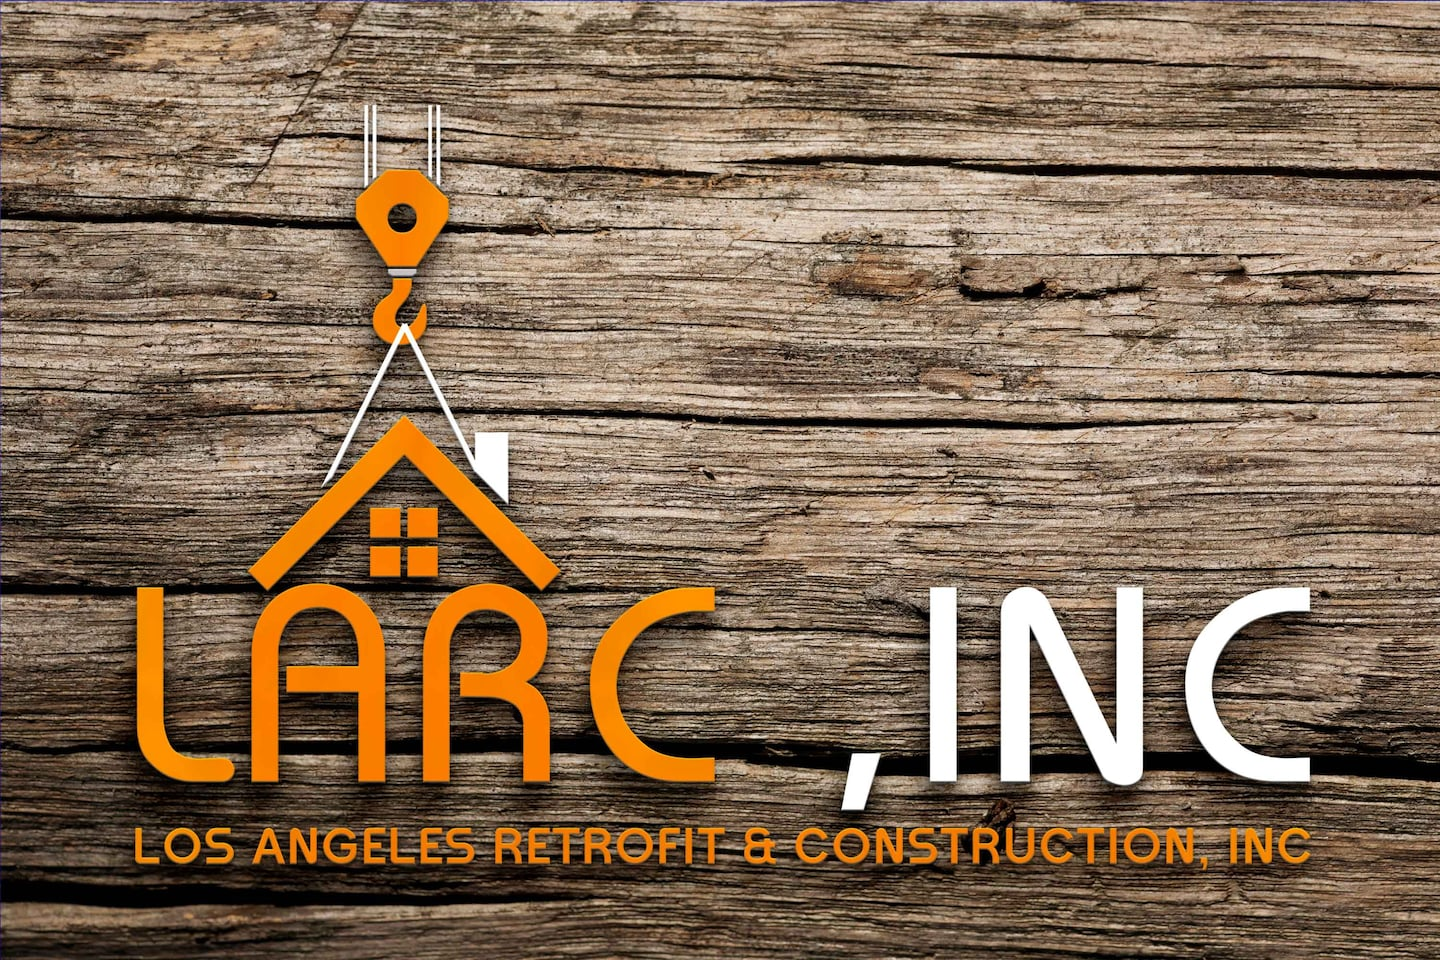 Los Angeles Retrofit & Construction Inc